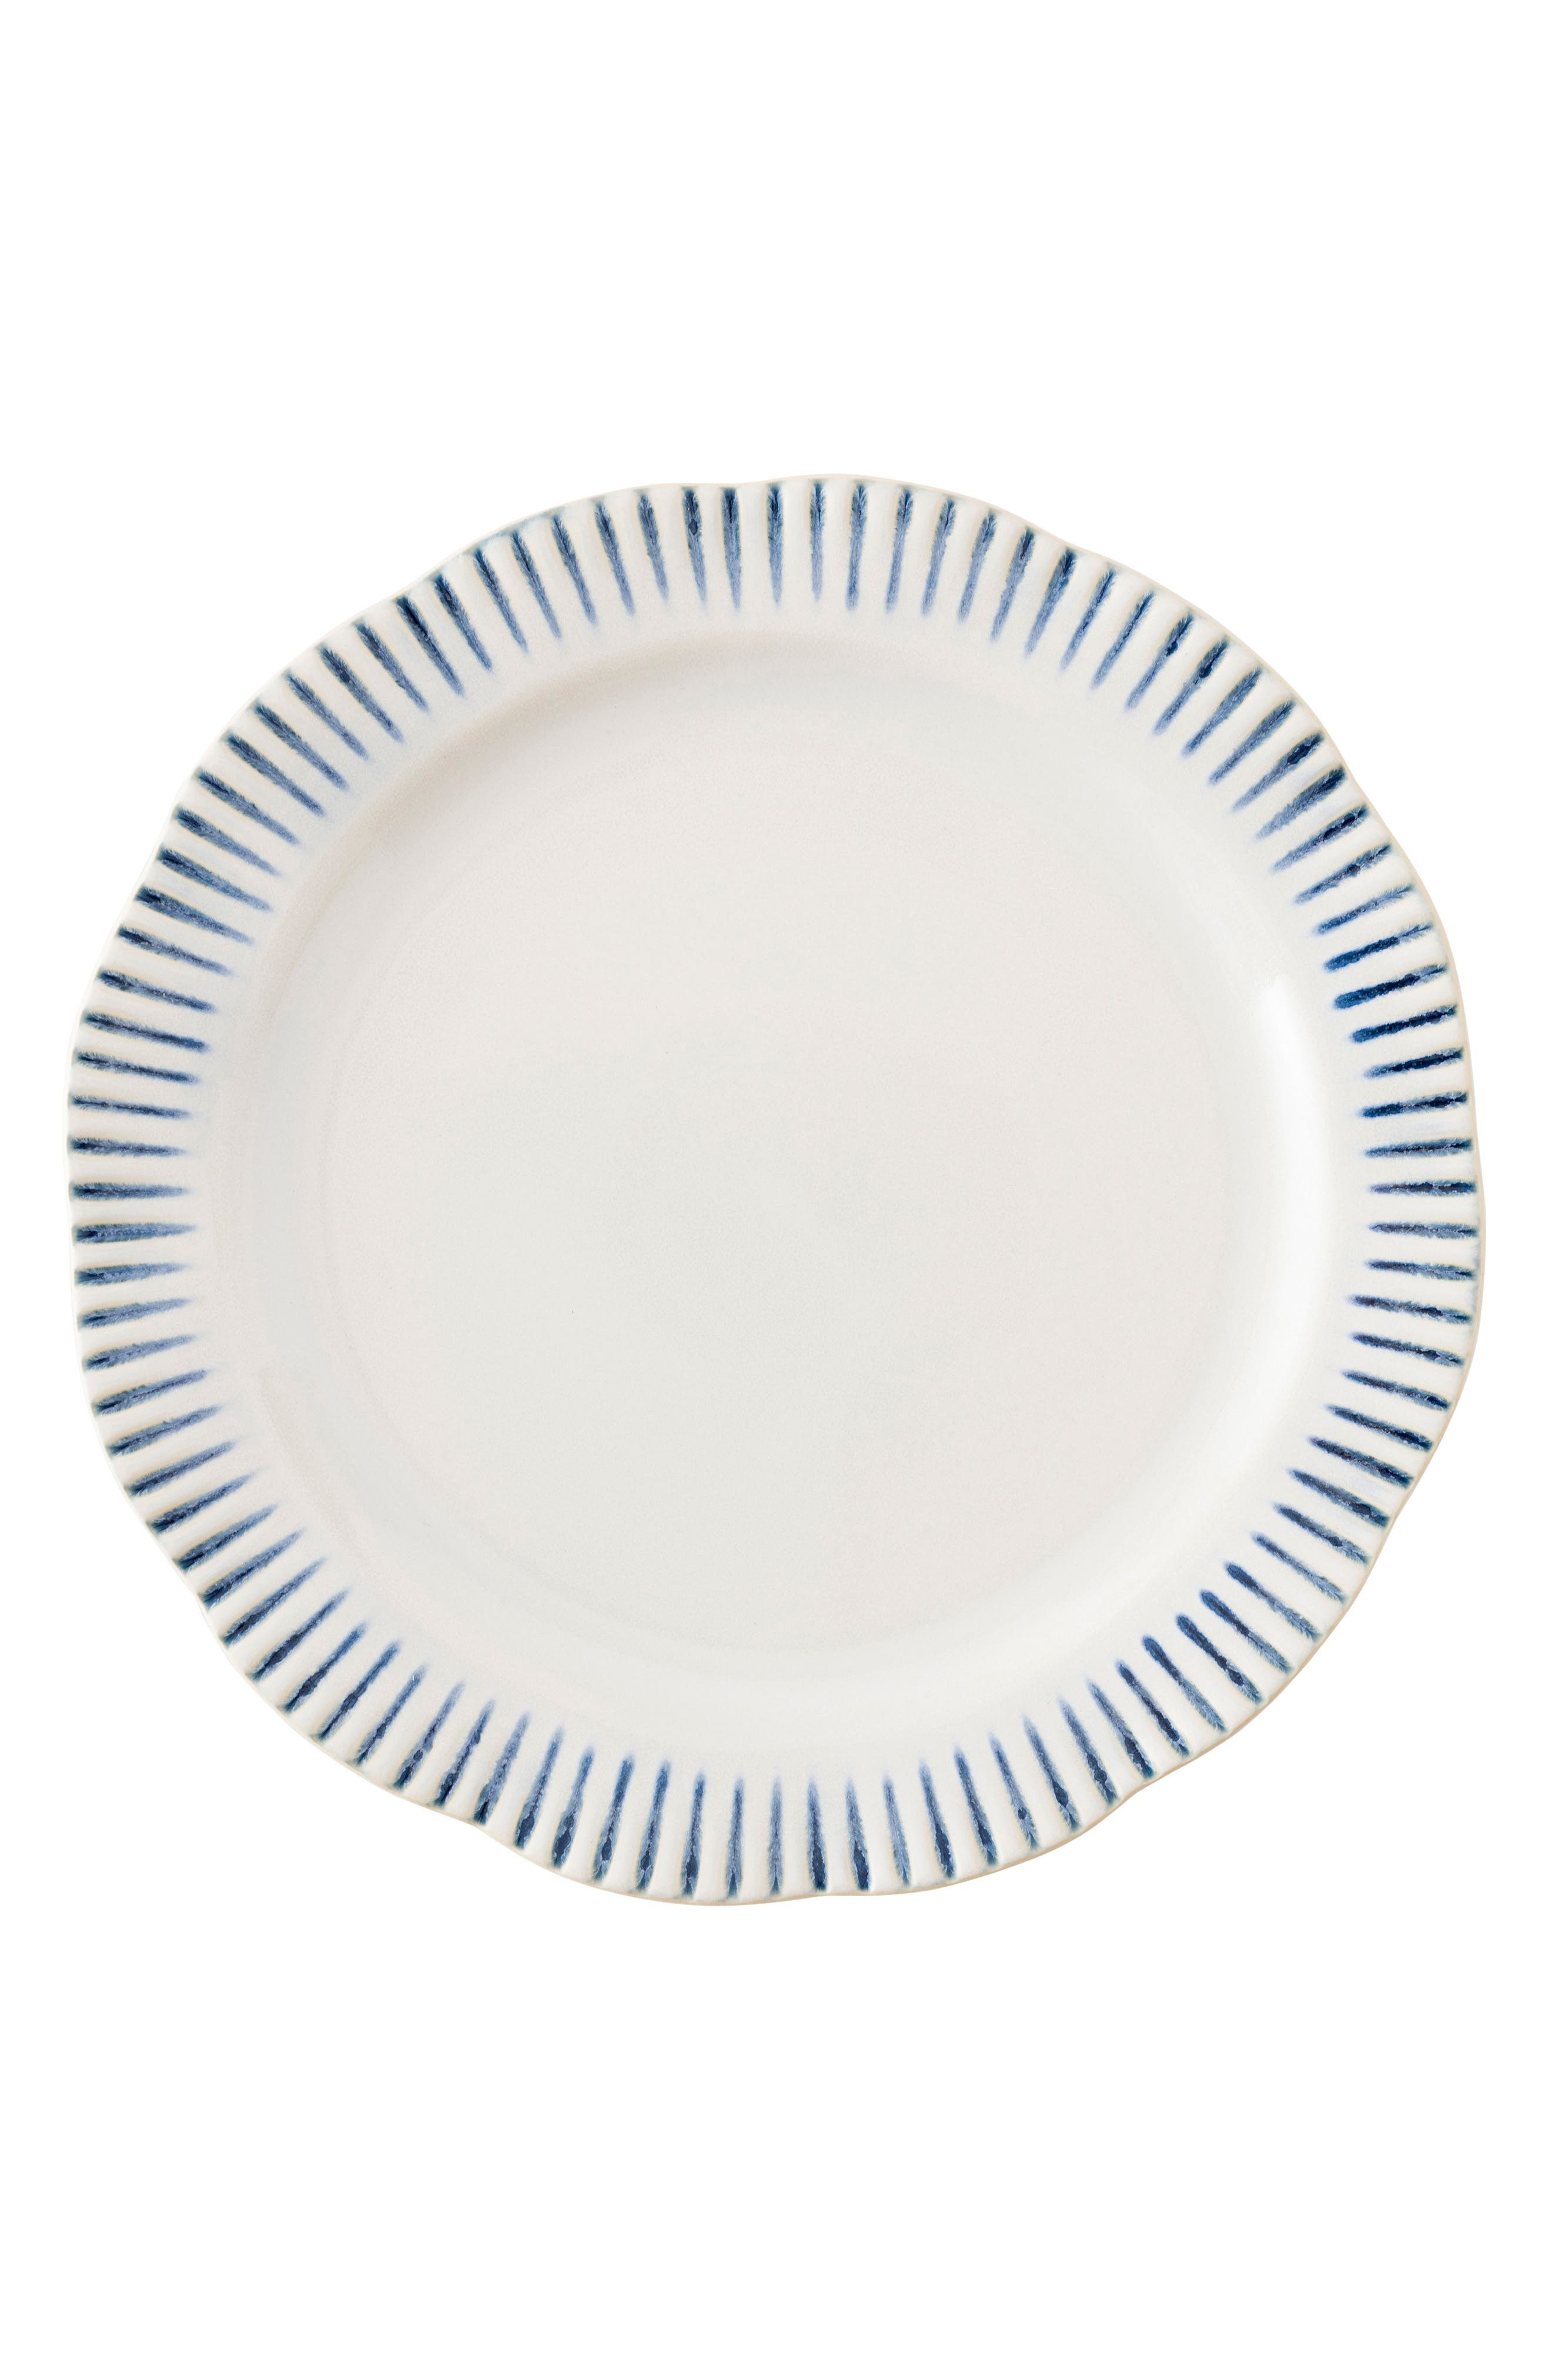 Wanderlust Collection - Sitio Stripe Stoneware Dinner Plate,                             Main thumbnail 1, color,                             Indigo